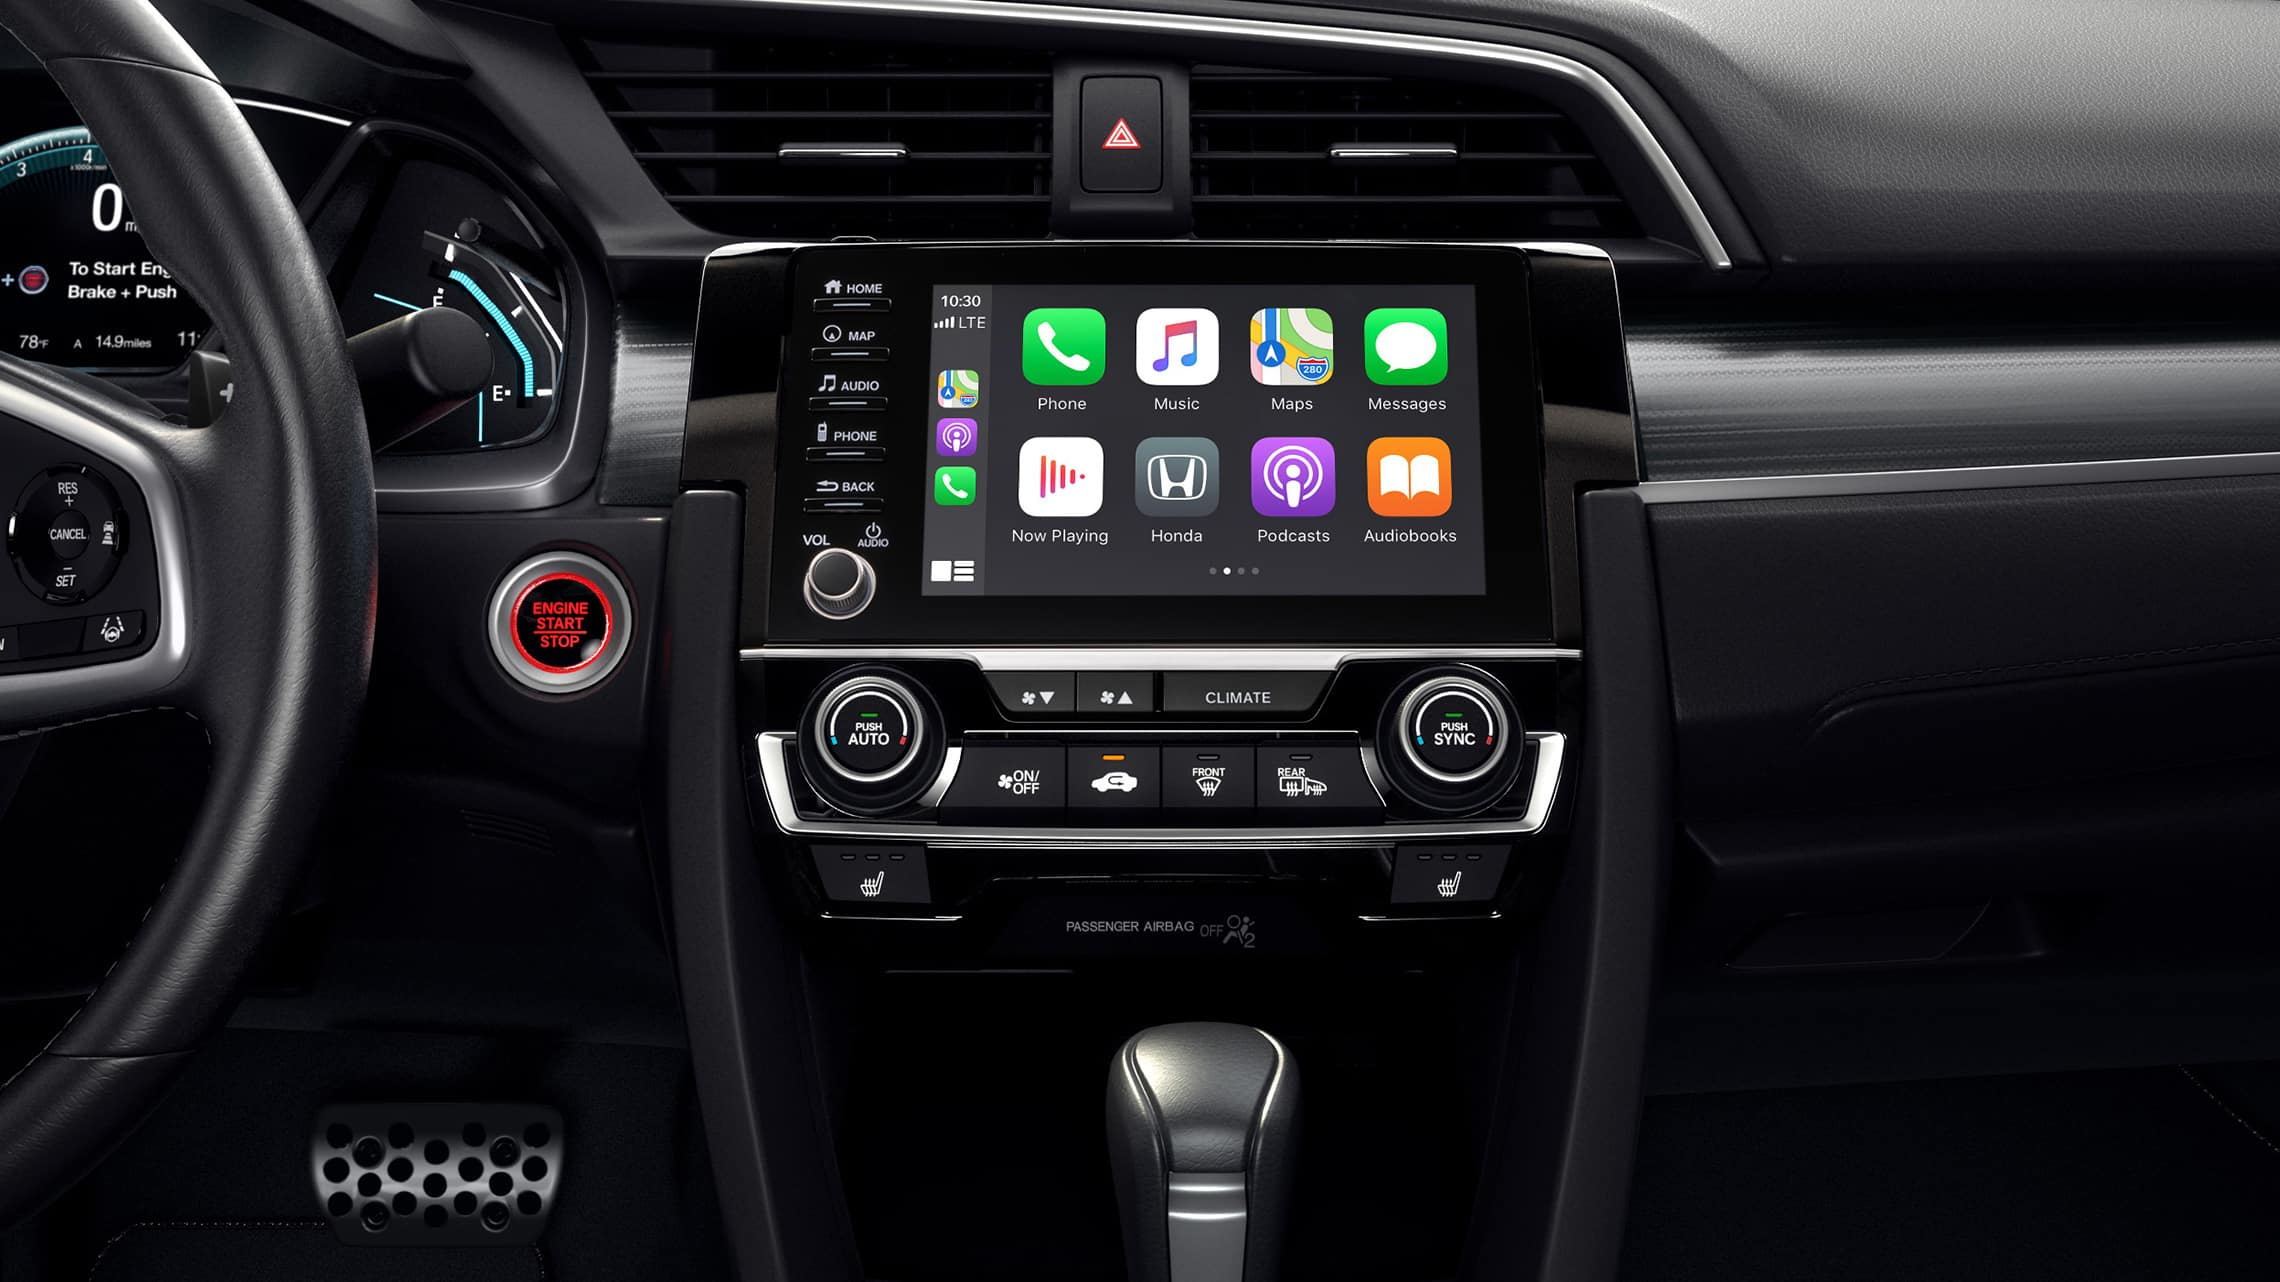 Apple CarPlay® detail on Display Audio touch-screen in the 2021 Honda Civic Touring Sedan.